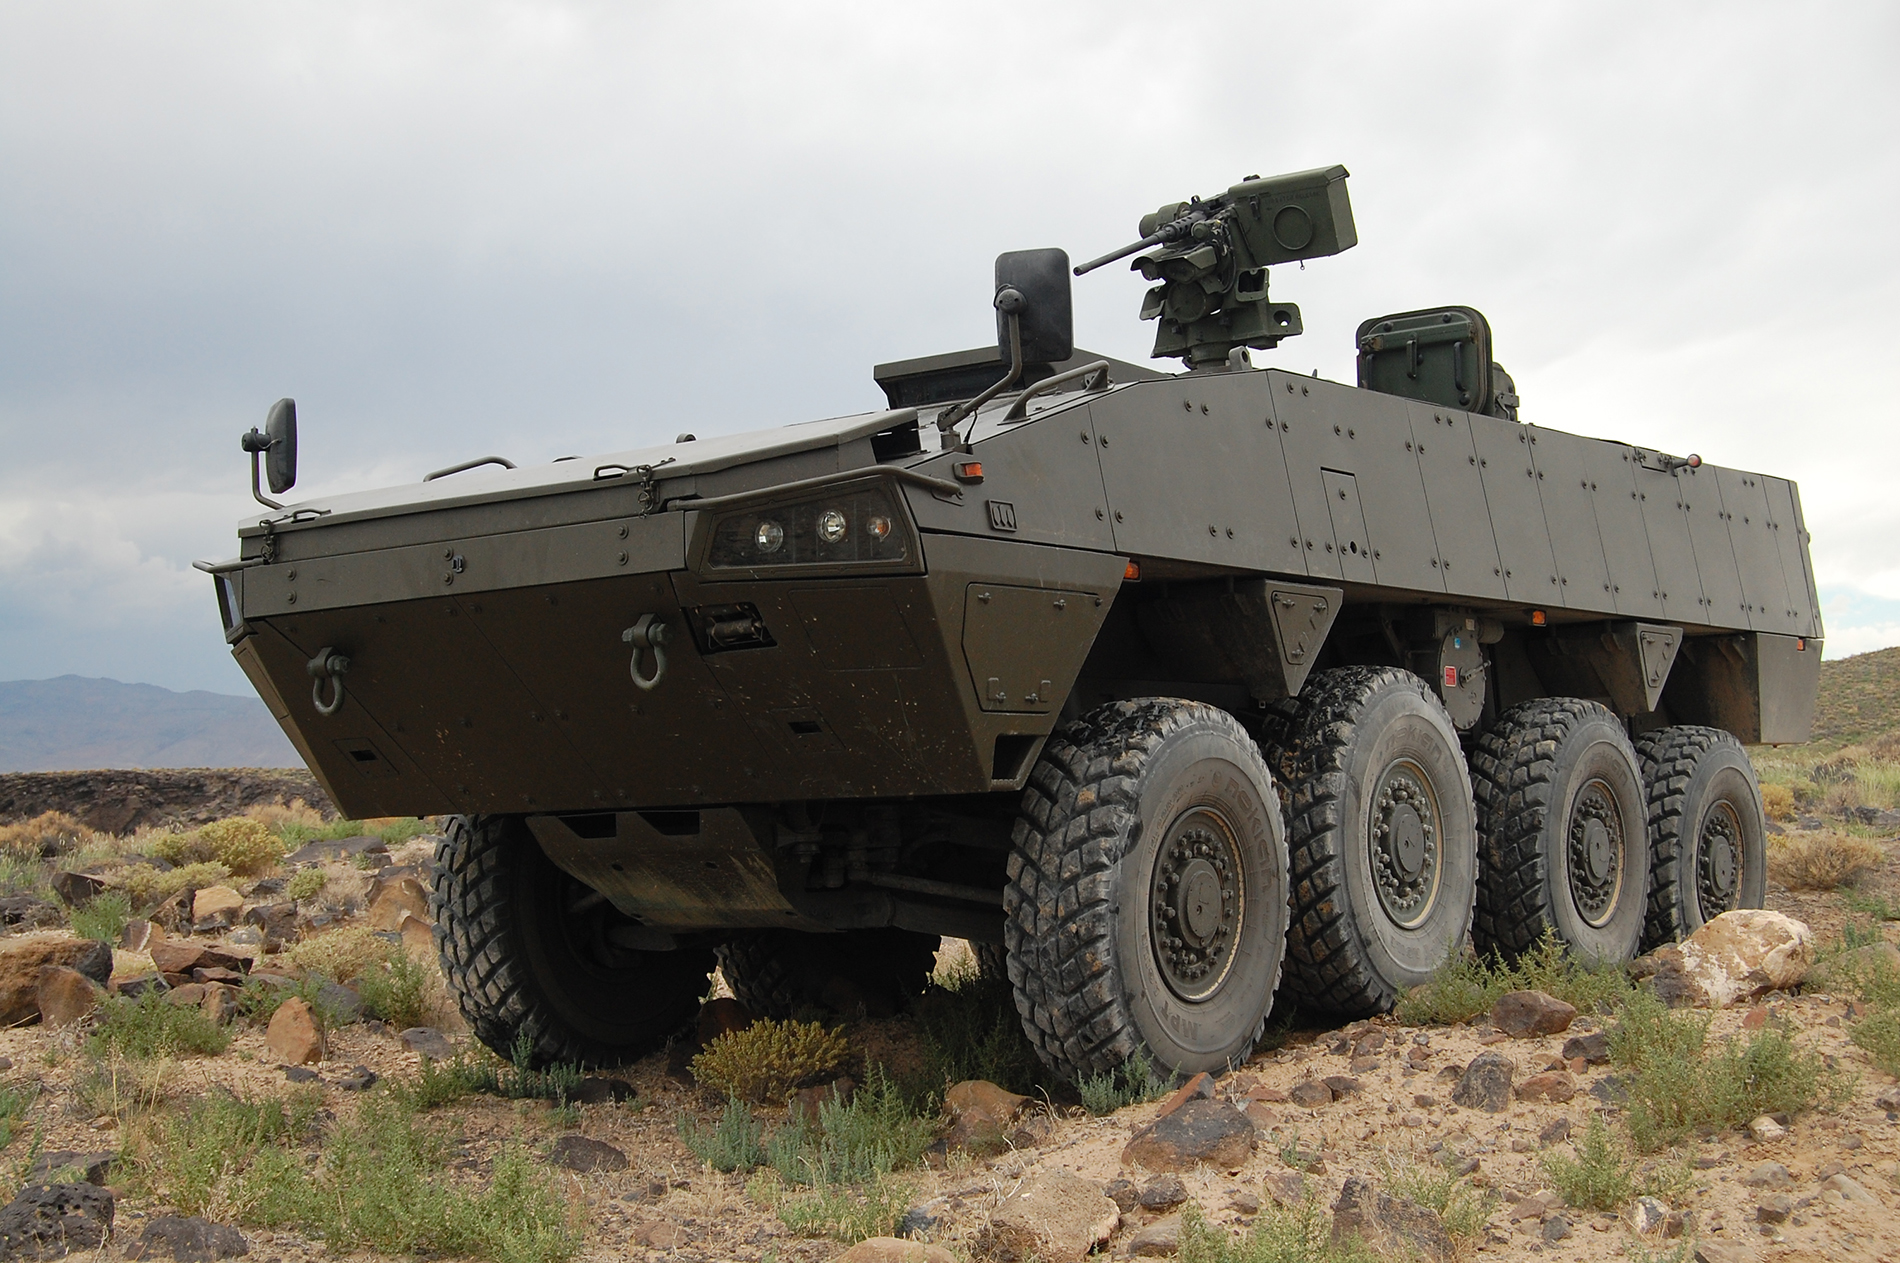 The Lockheed Martin Havoc vehicle based off of the Finnish Patria AMV is one of the likely competitors for the USMC ACV 1.1 competition. Lockheed Martin Photo